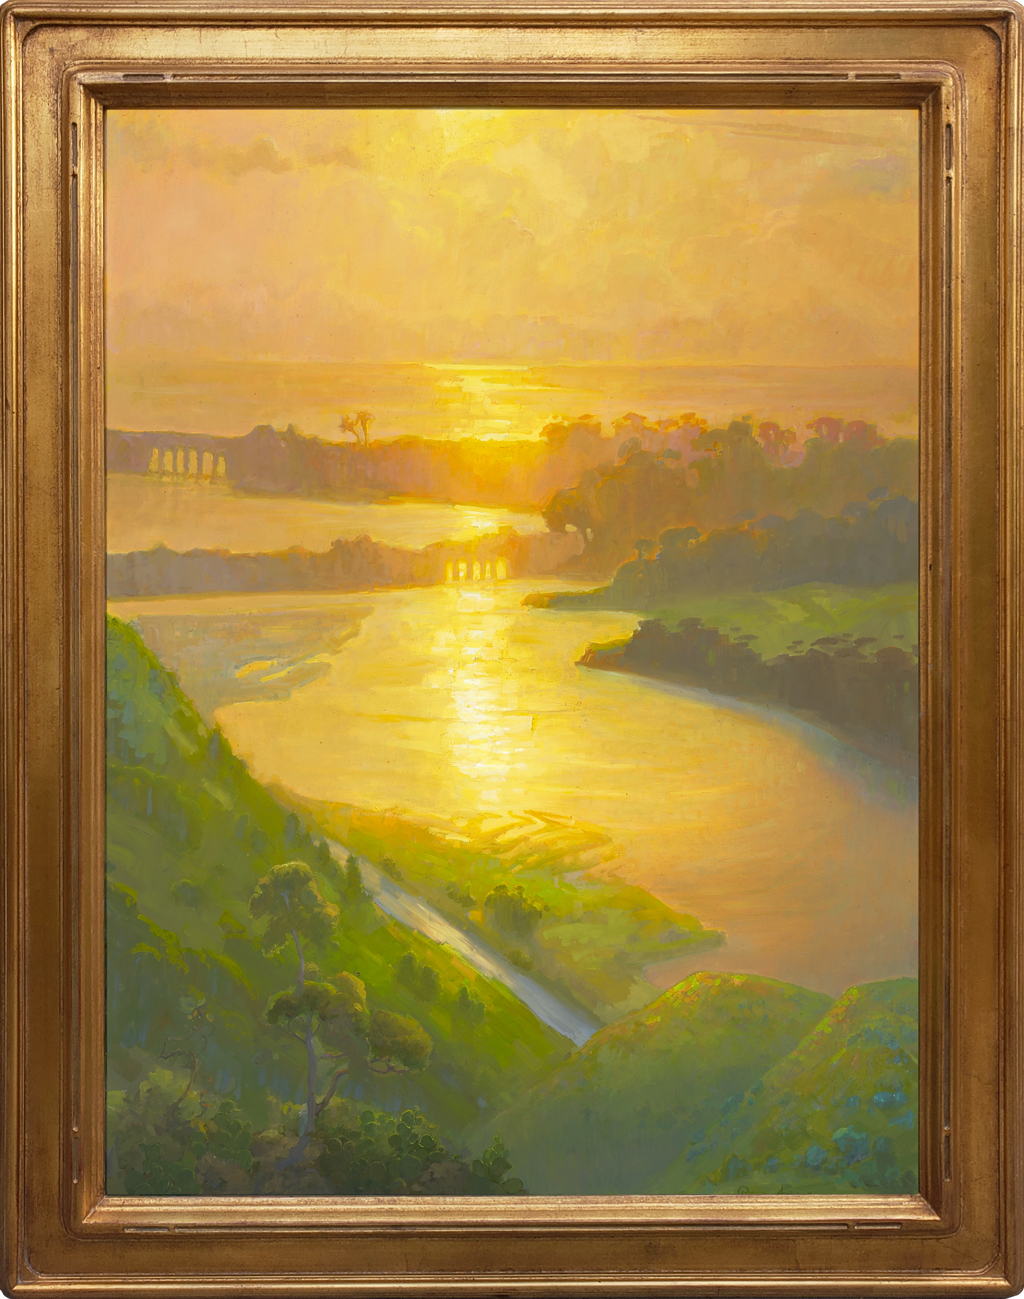 """American Legacy Fine Arts presents """"Peaceful Passage; Batiquitos Lagoon, Carlsbad, California"""" a painting by Peter Adams"""